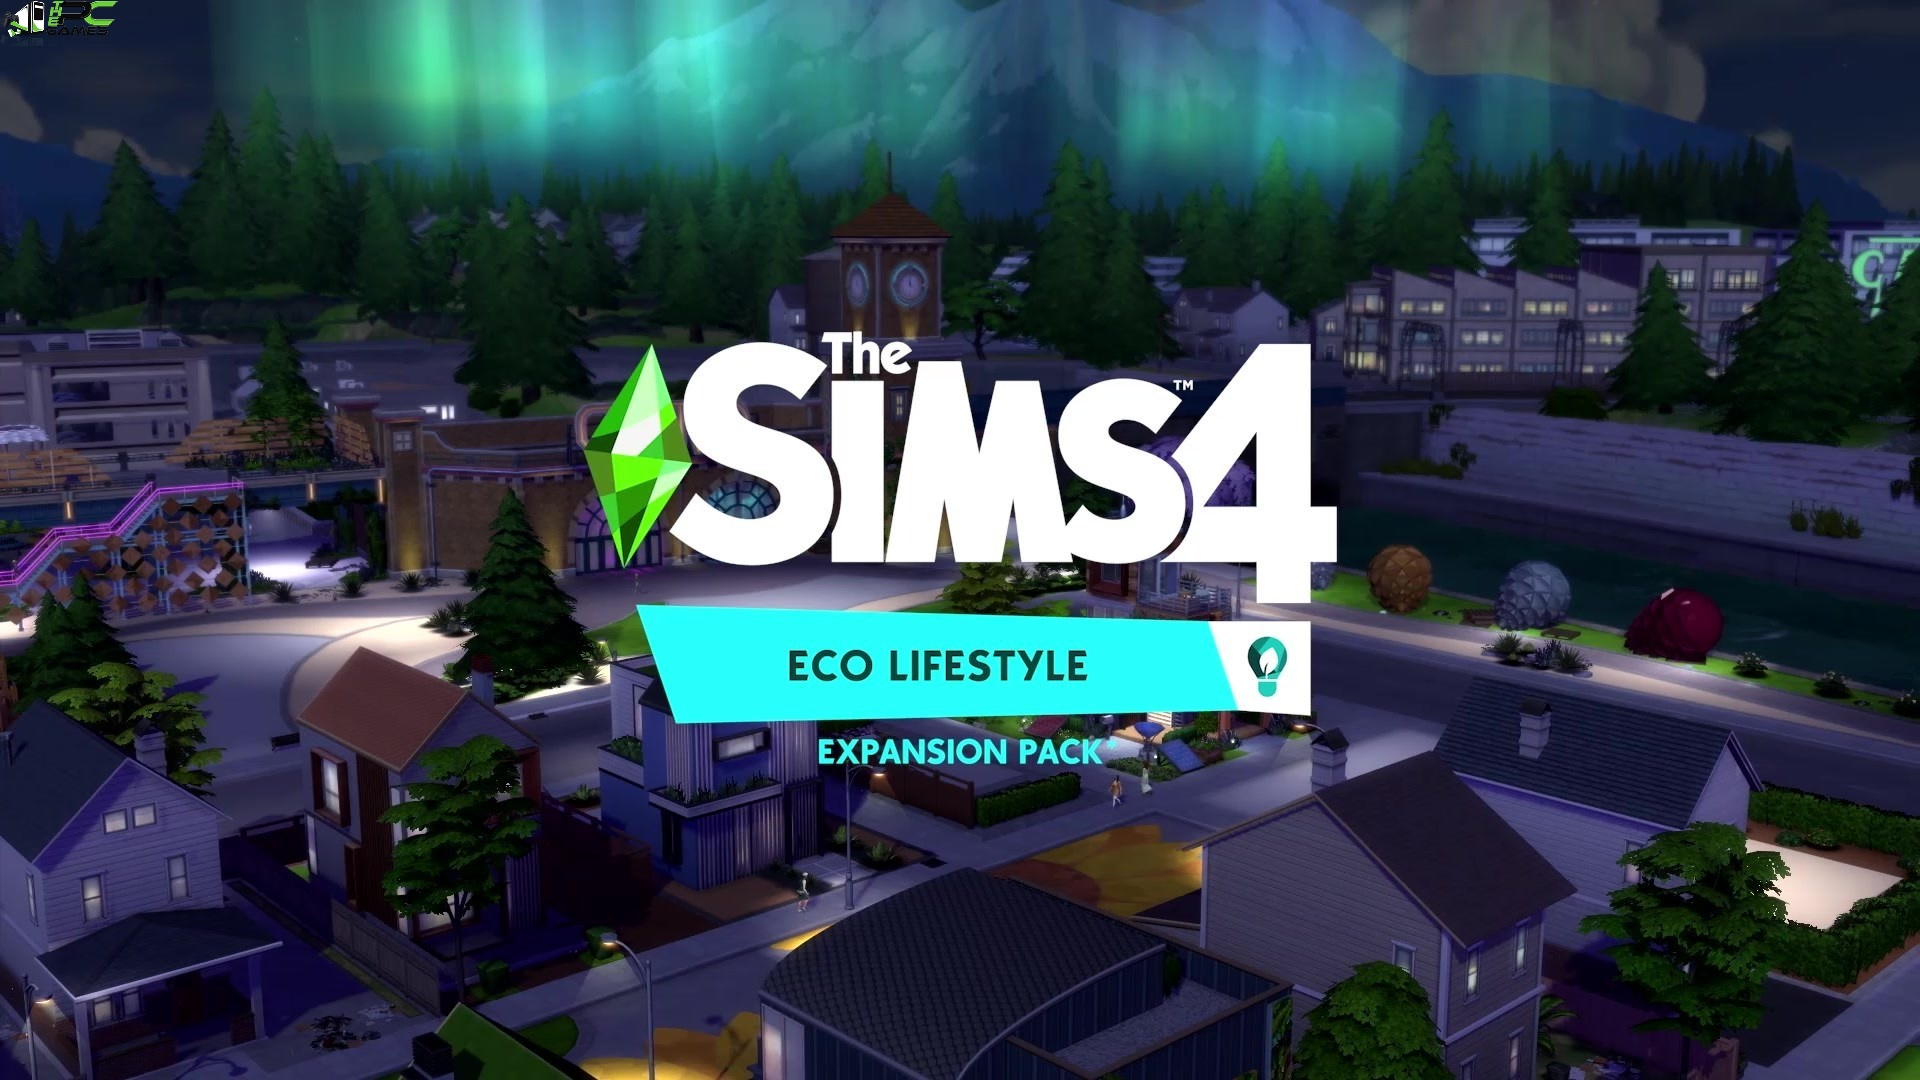 The Sims 4 Eco Lifestyle Cover